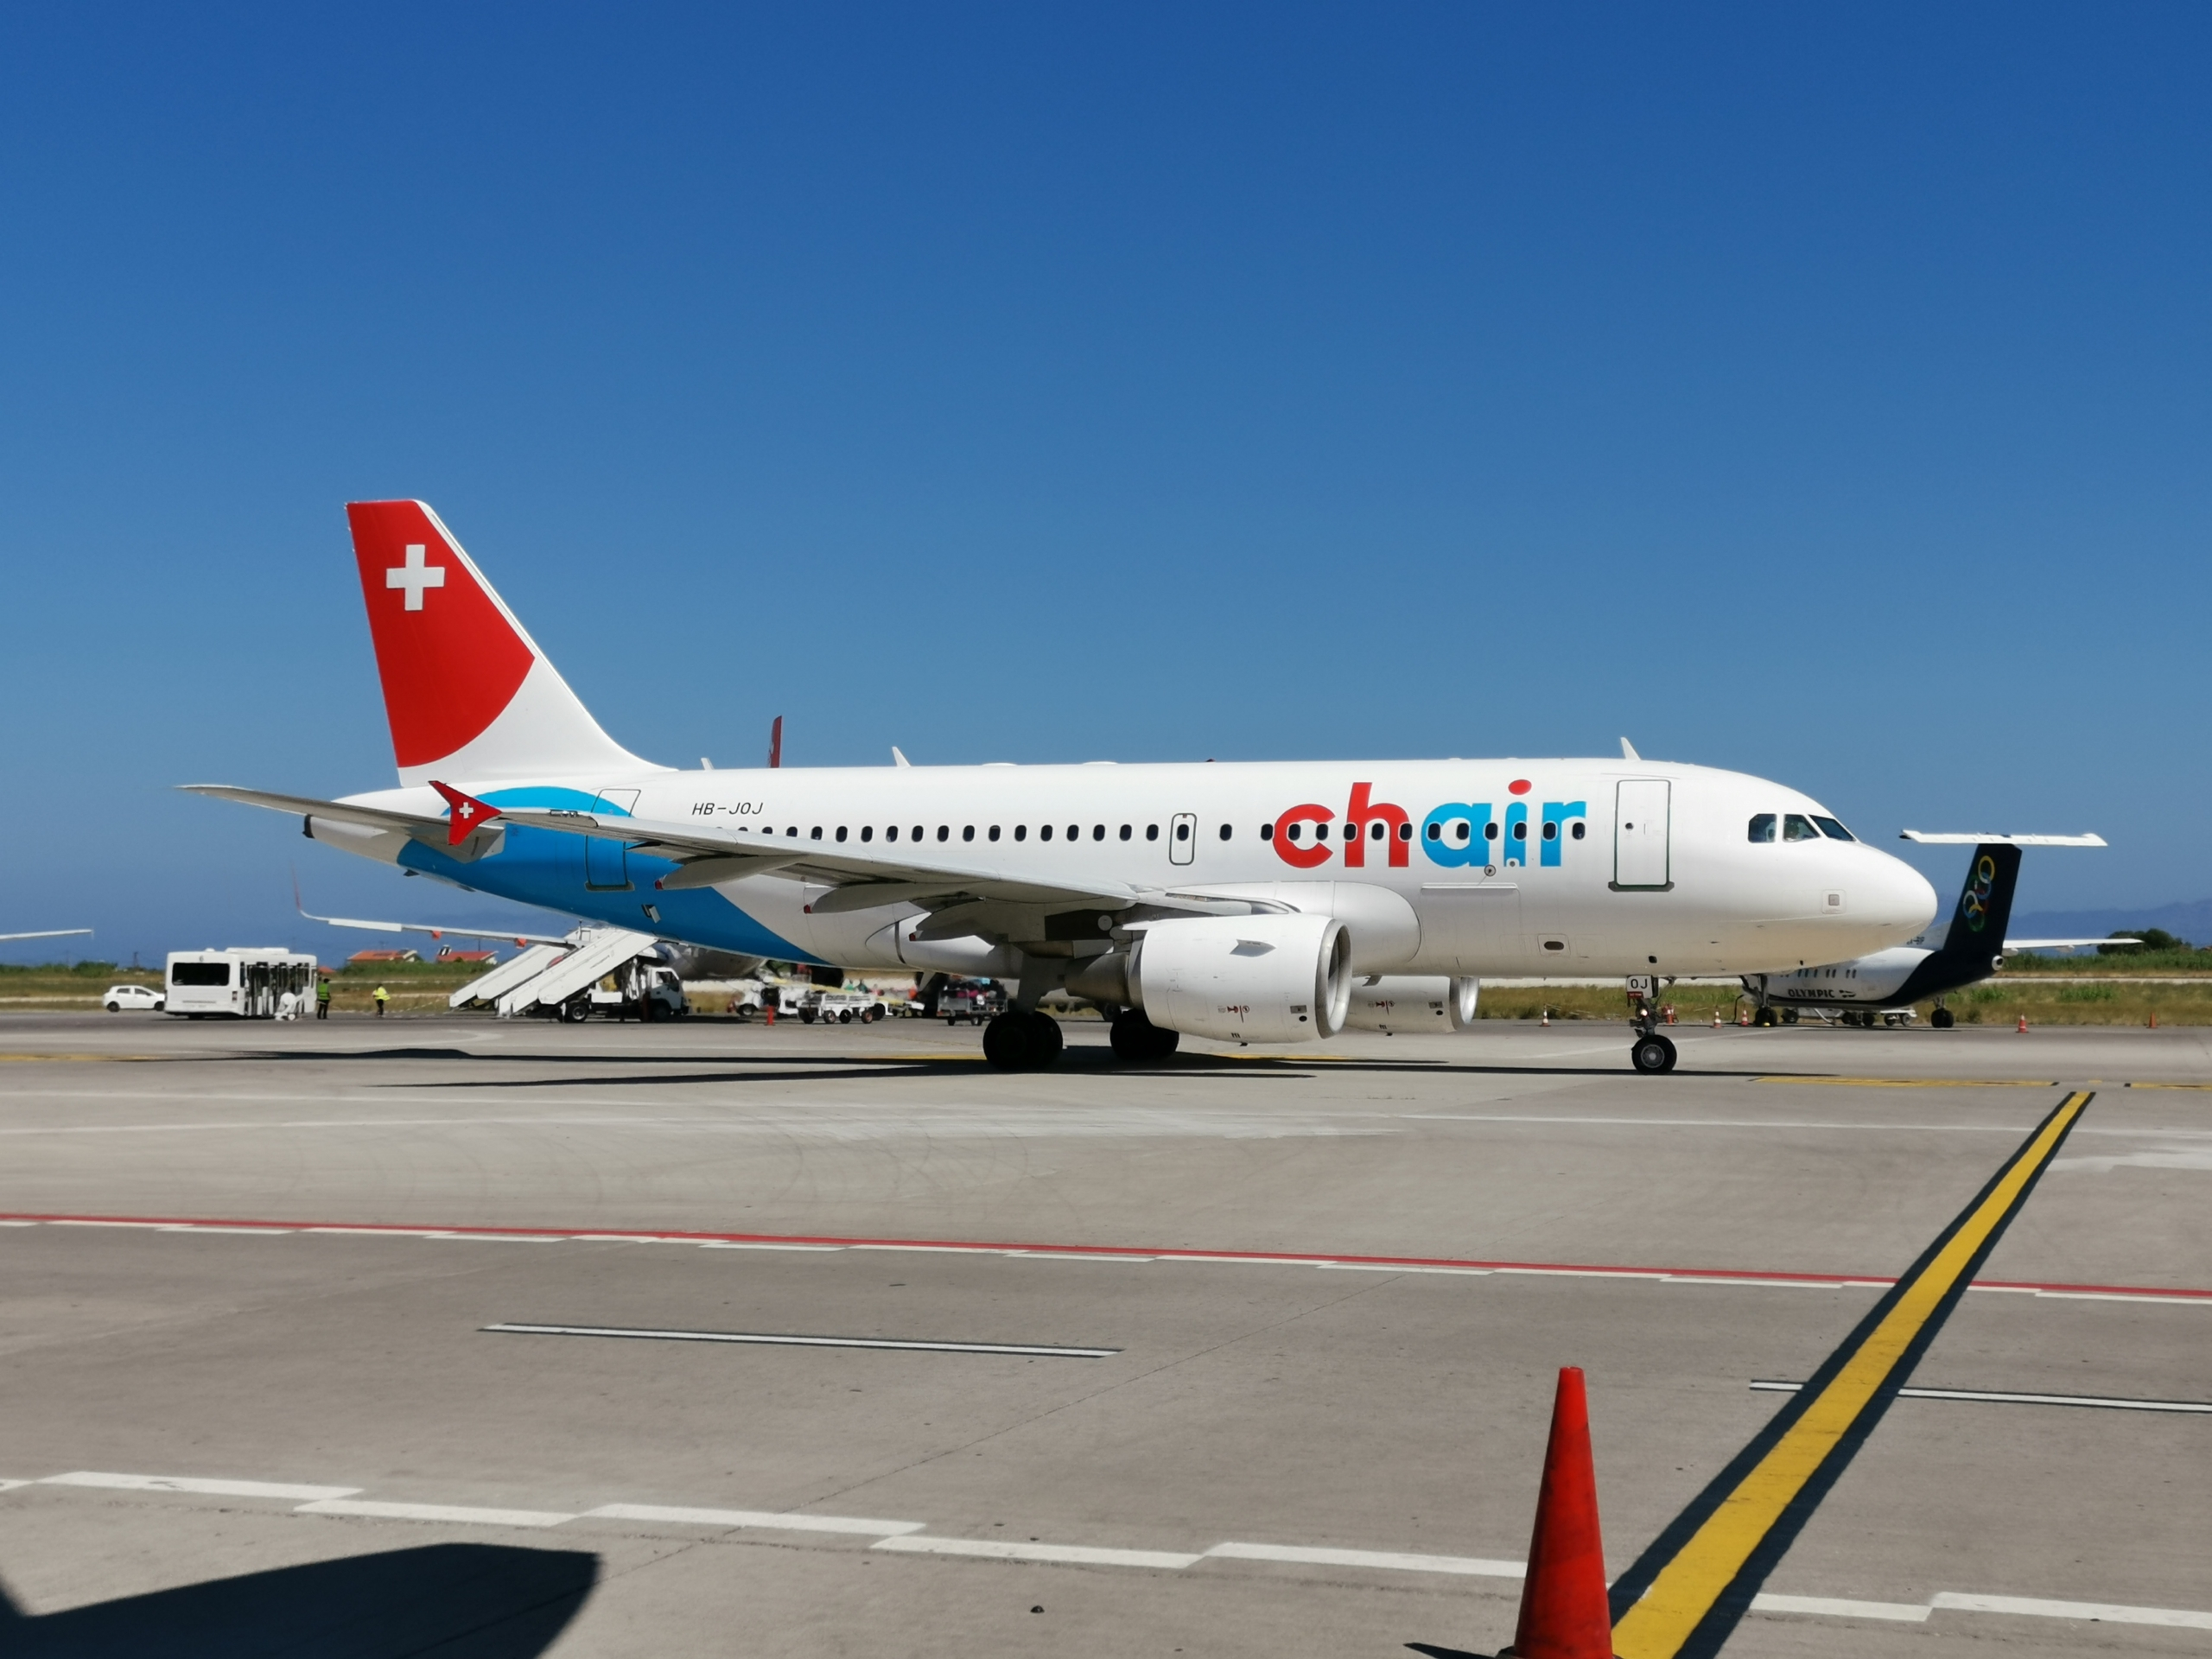 Chair Airlines Leases Enter Air 737 To Plug Capacity Gap